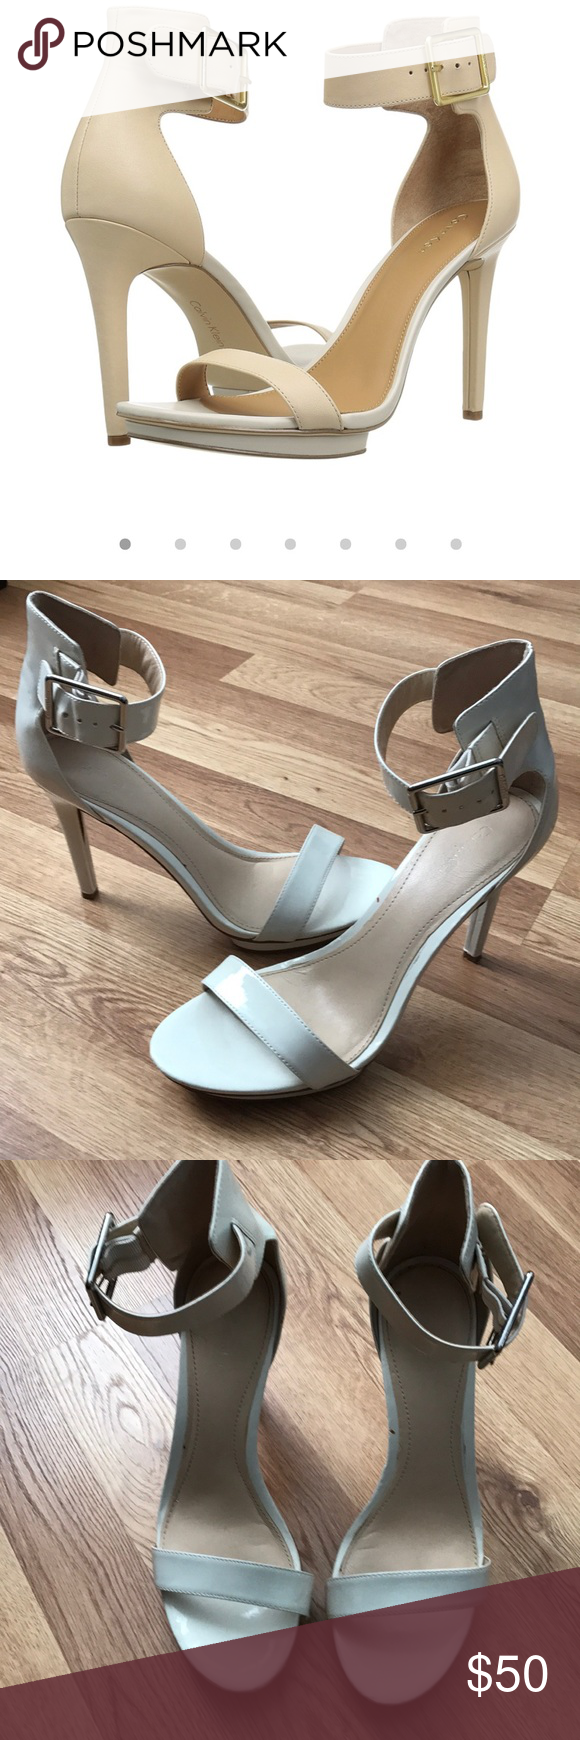 66b222170fe Calvin Klein Vivian white ankle strap sandals 🎀soft white patent leather  🎀Buckle ankle 🎀Wear imperfections pictured 🎀Always authentic Calvin  Klein Shoes ...